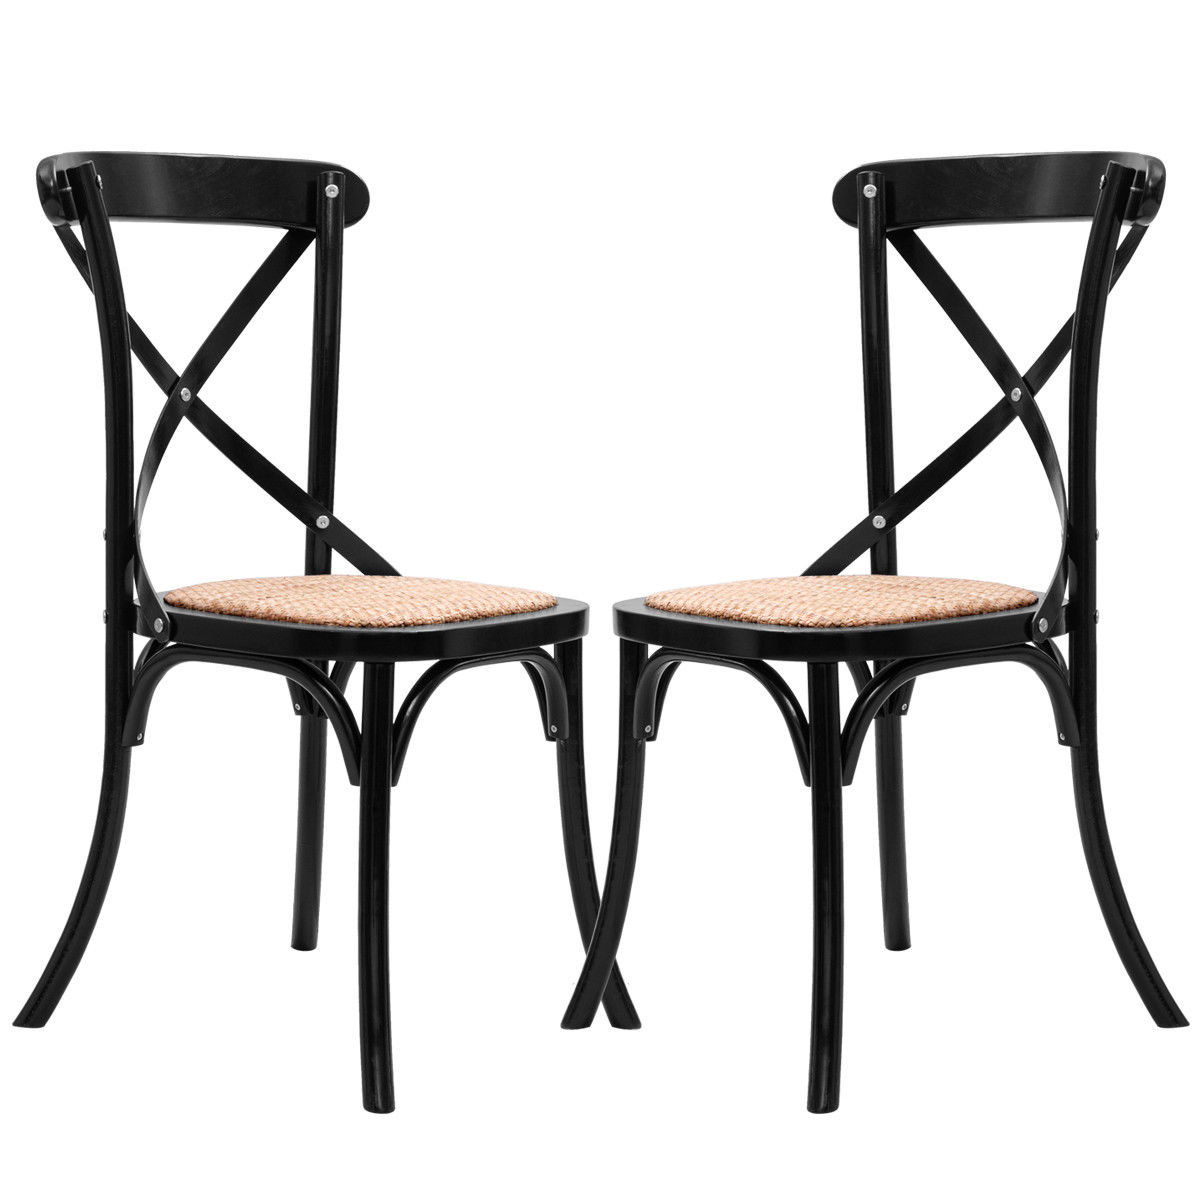 Giantex Set of 2 Cross Back Dining Side Chair Solid Wood Rattan Seat Modern Living Room Dining Room Furniture HW56269BK все цены